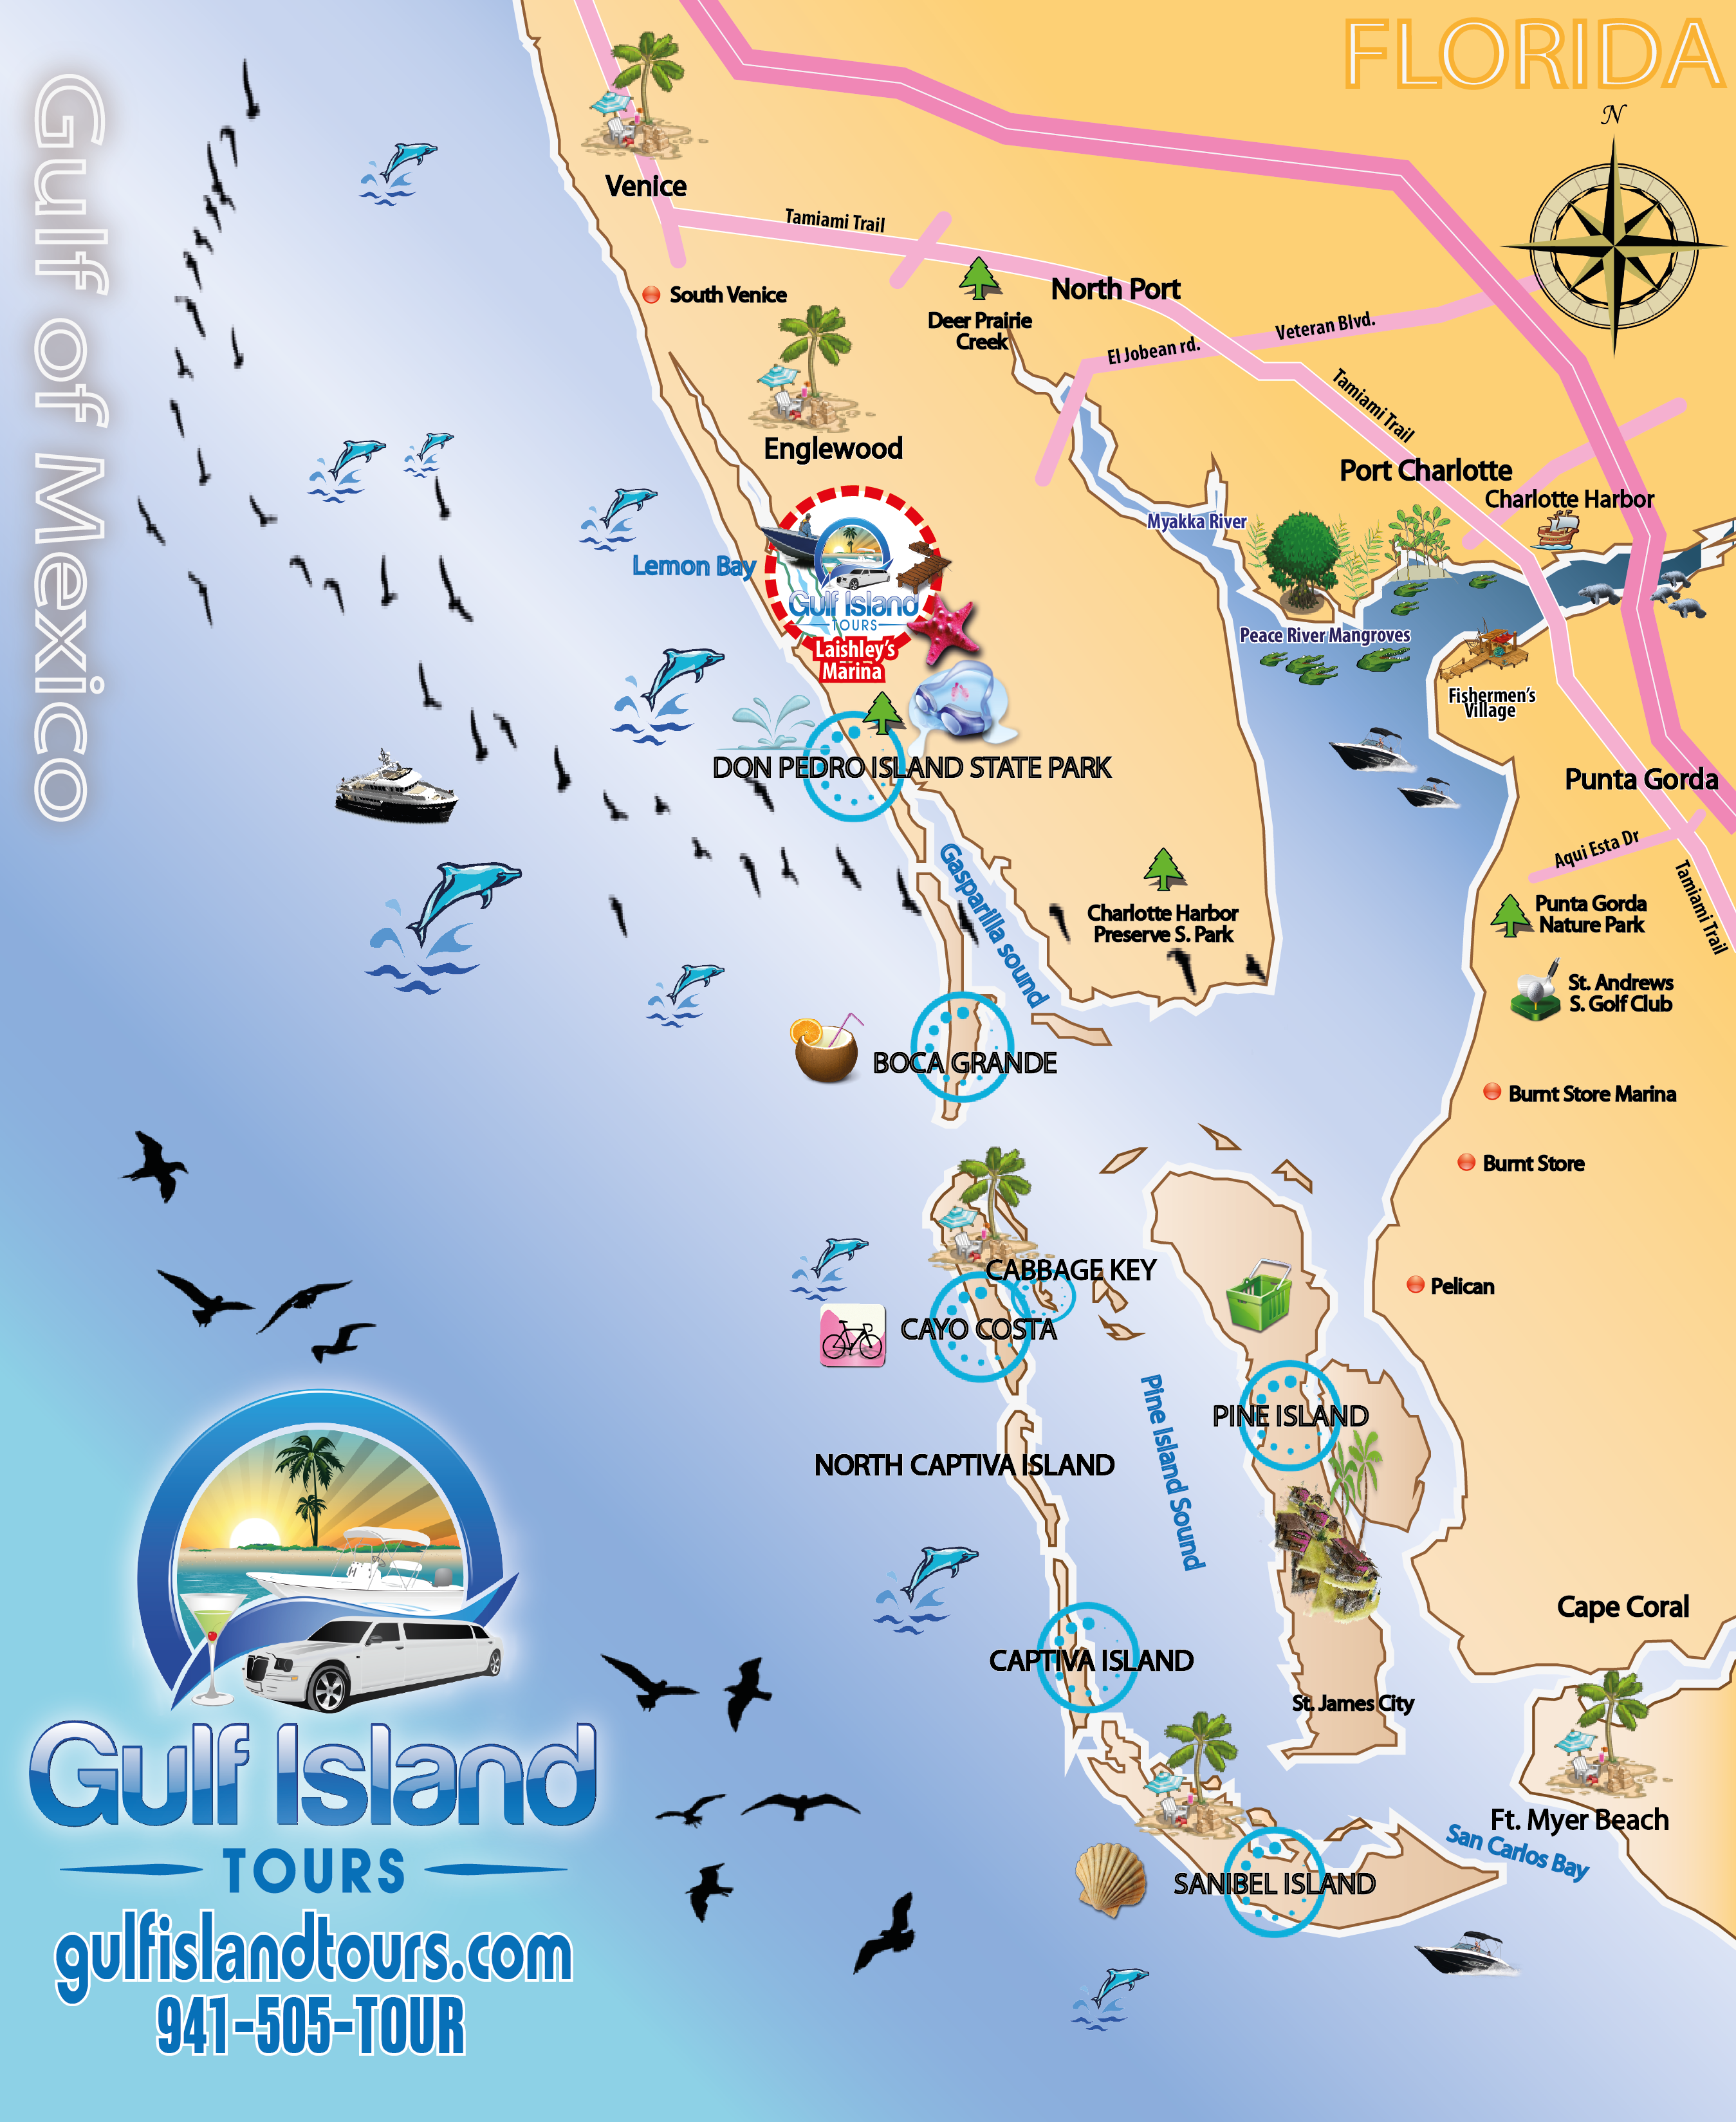 Gulf Island Tours Offers Boat Tours Yacht Charters - Florida map port charlotte